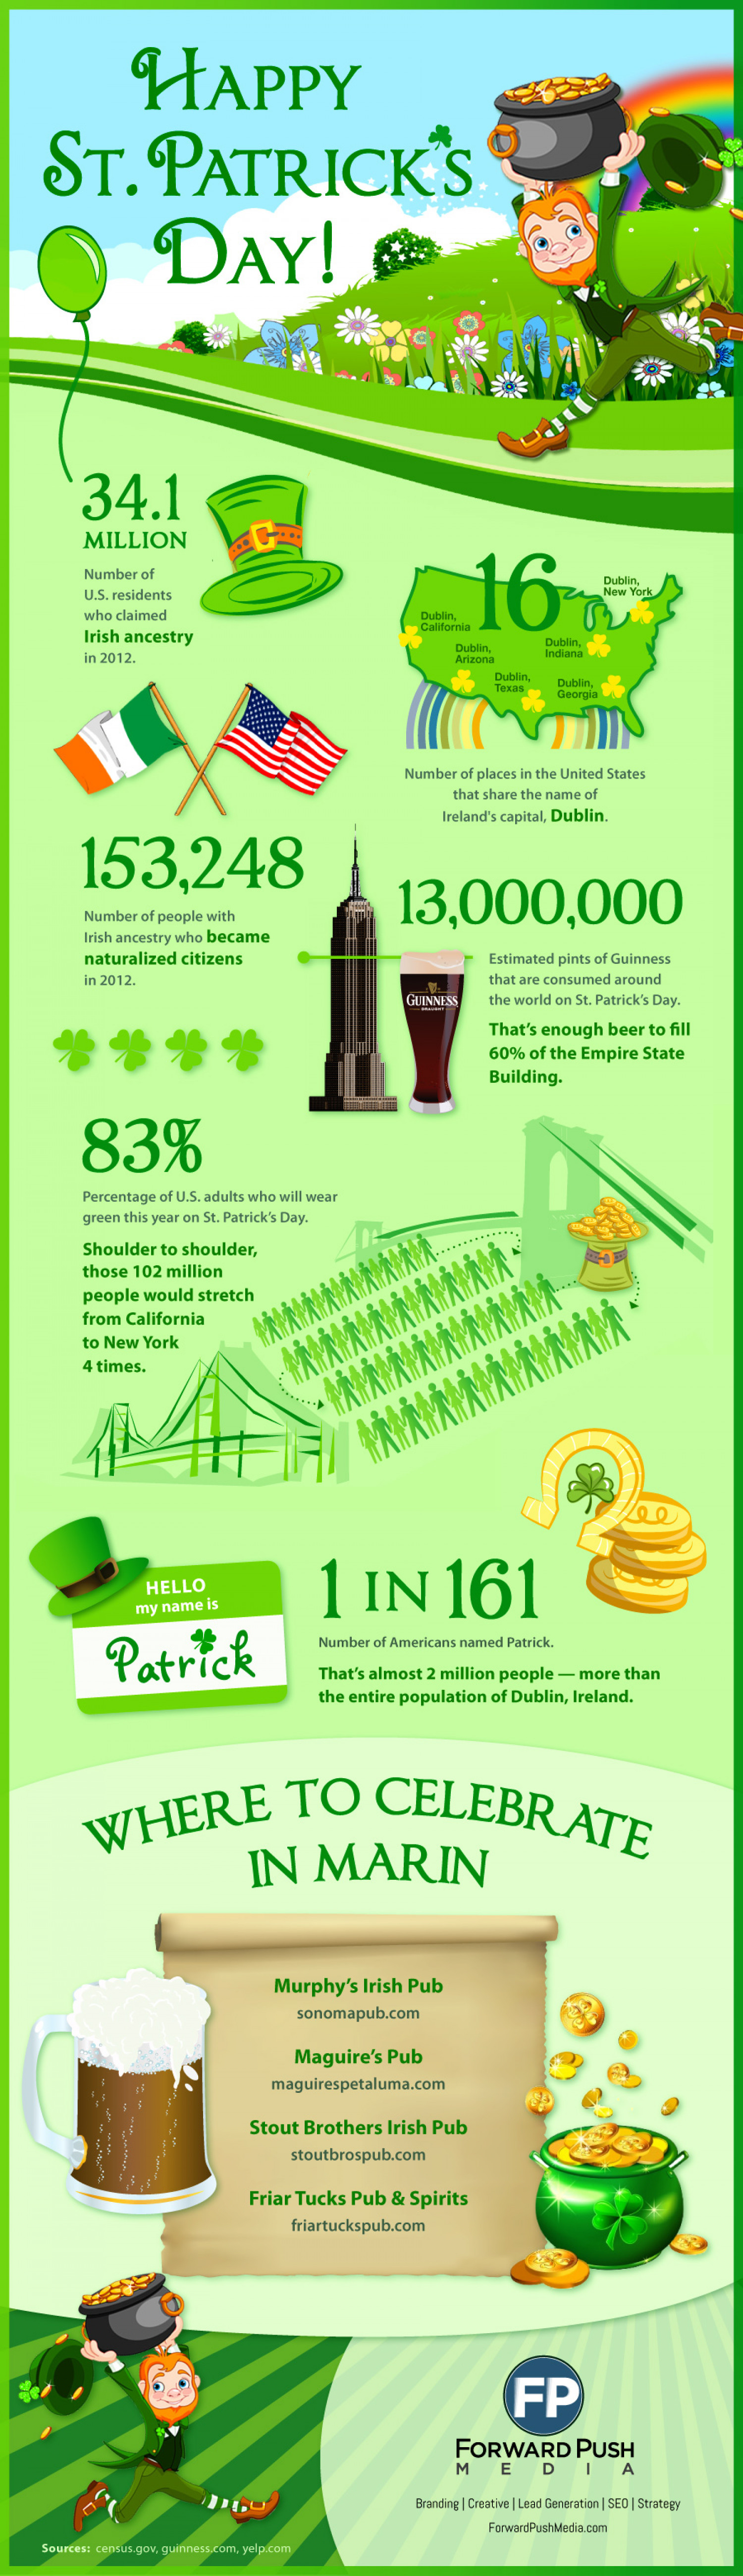 Happy St. Patrick's Day 2014 from San Francisco Infographic